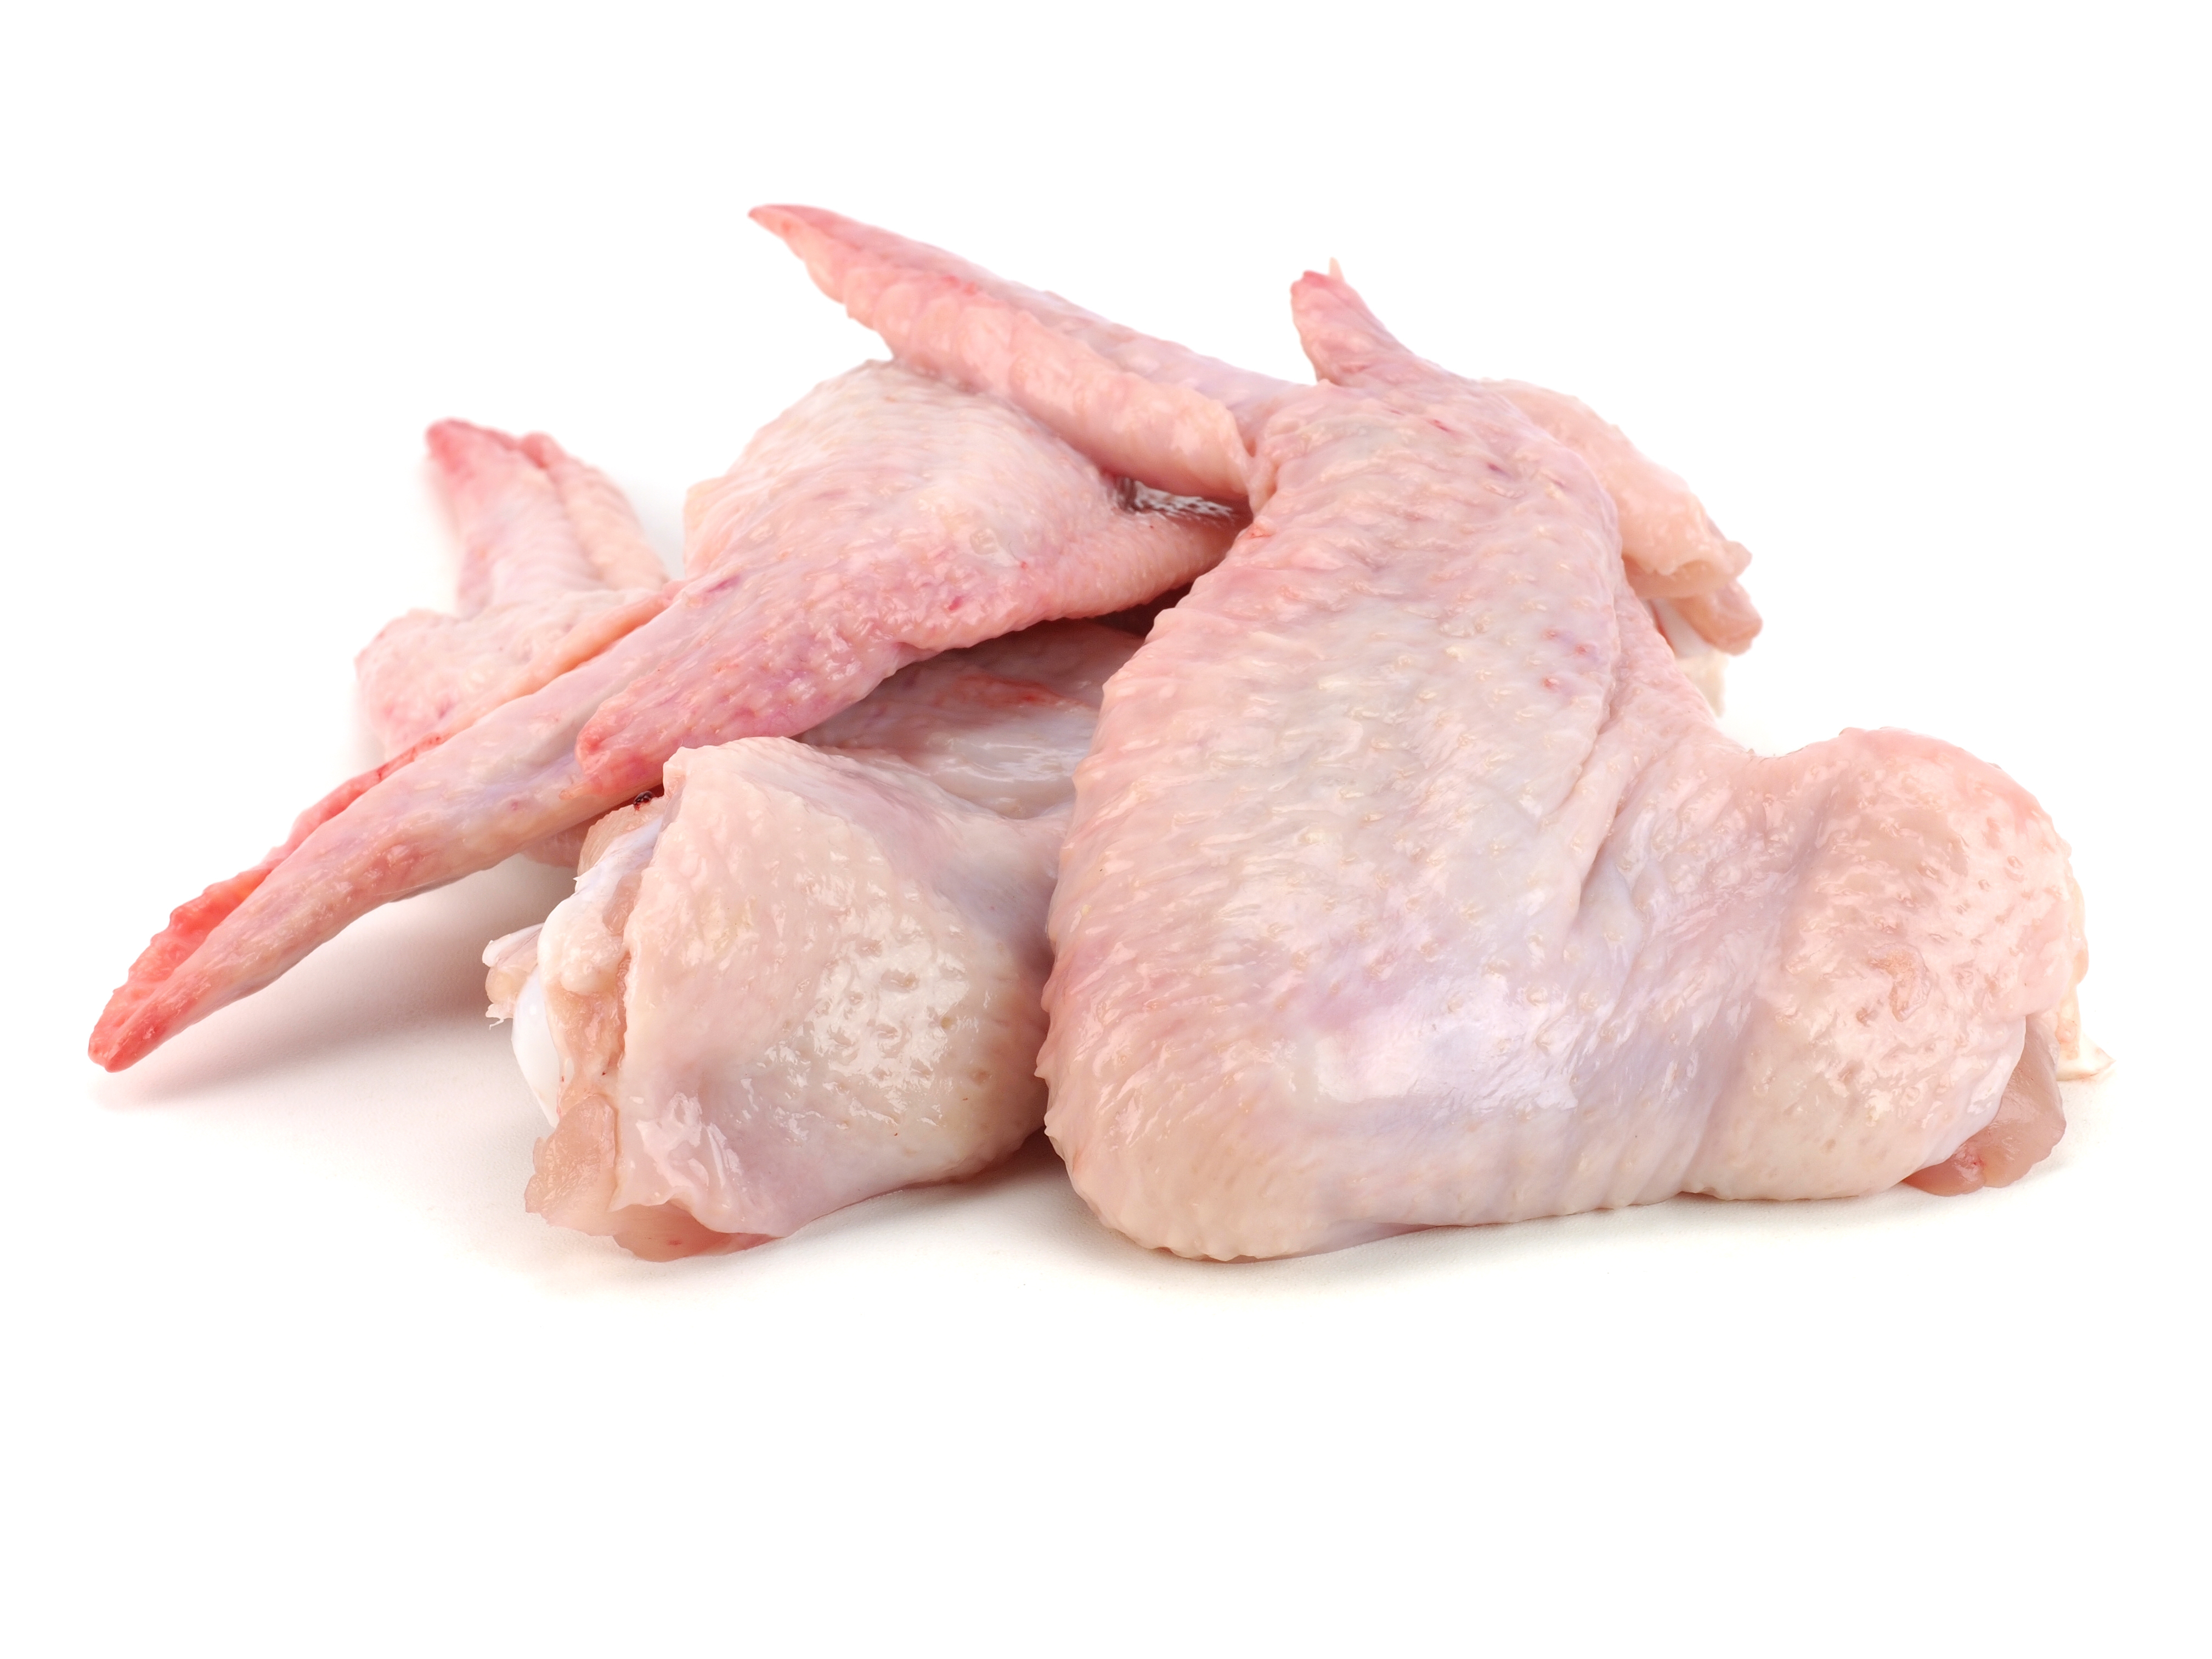 Is A Raw Turkey From Whole Foods Frozen